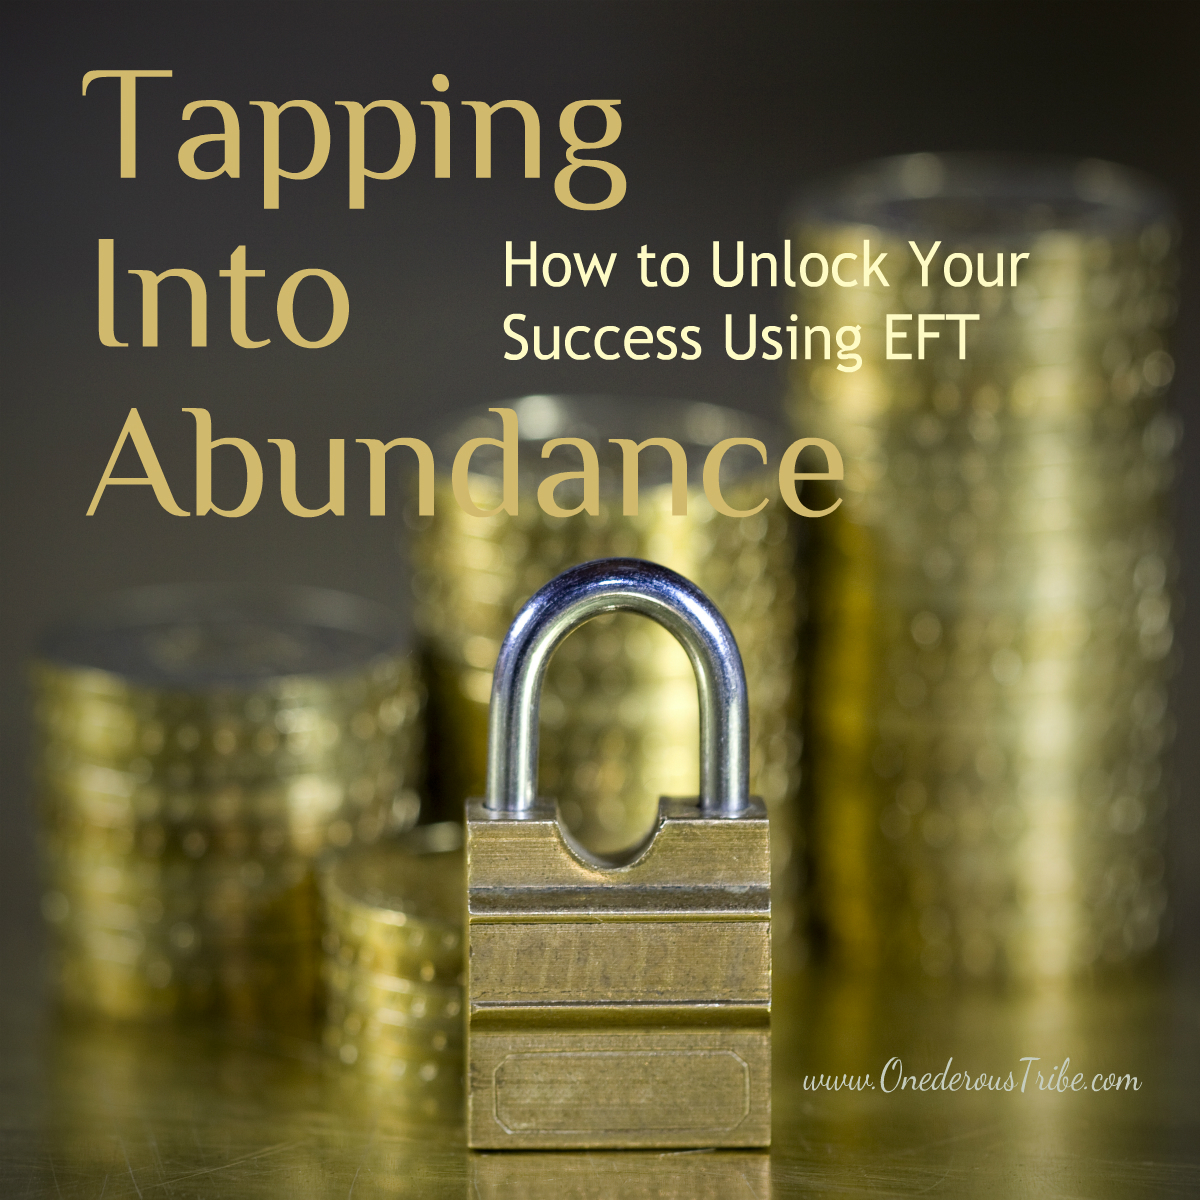 Powerful EFT eBook: Tapping into Abundance Image